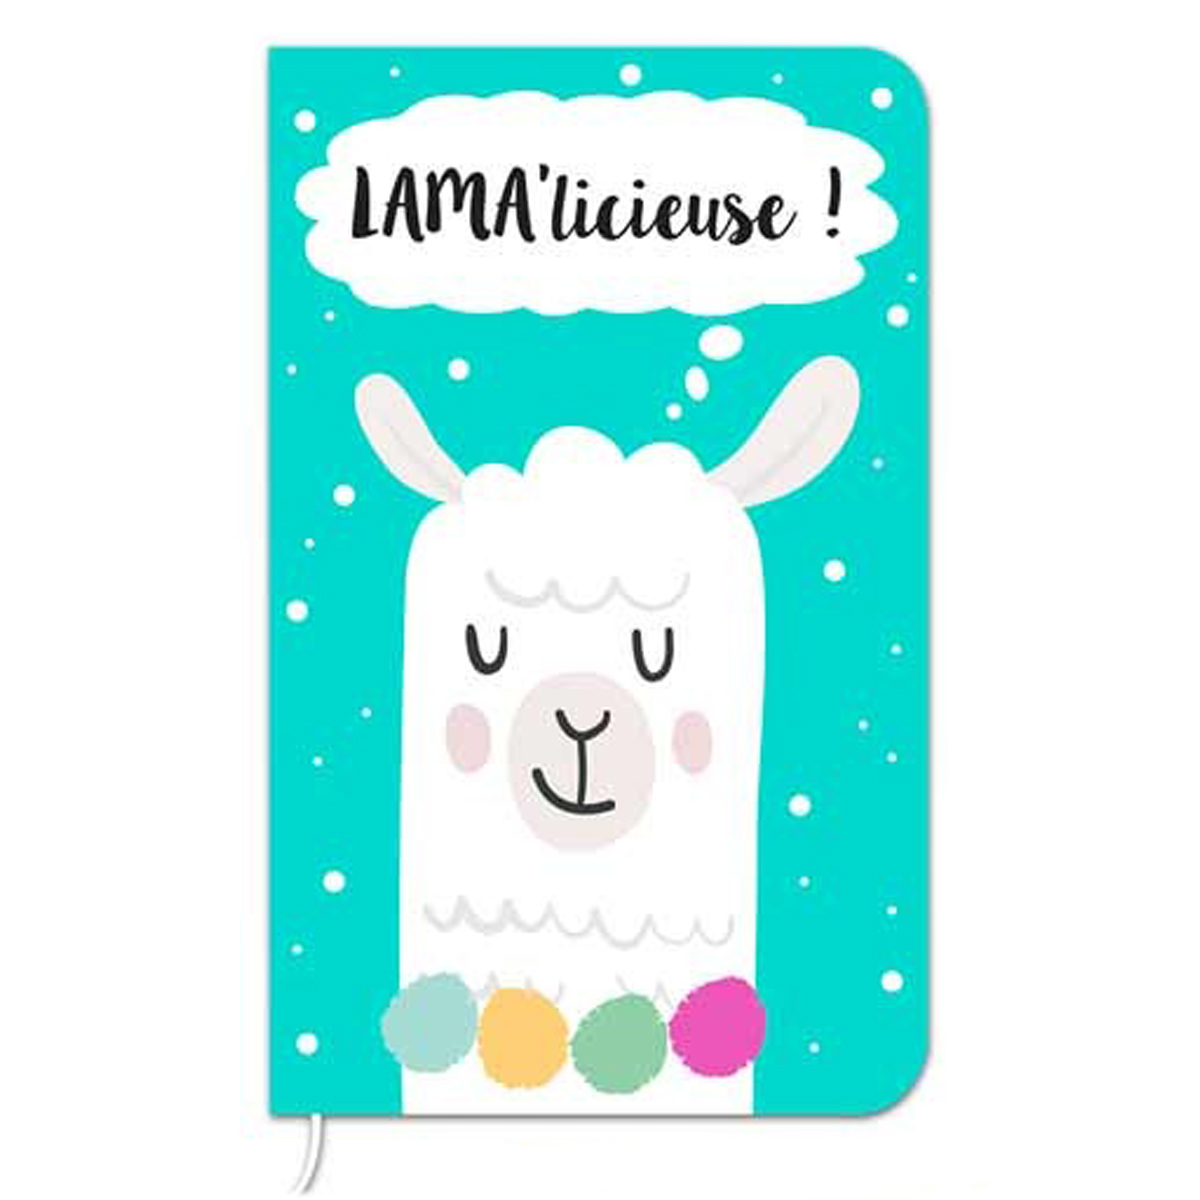 Carnet de notes \'Lama Mania\' turquoise (Lama\' licieuse) - 145x9 cm (72 pages) - [Q0874]